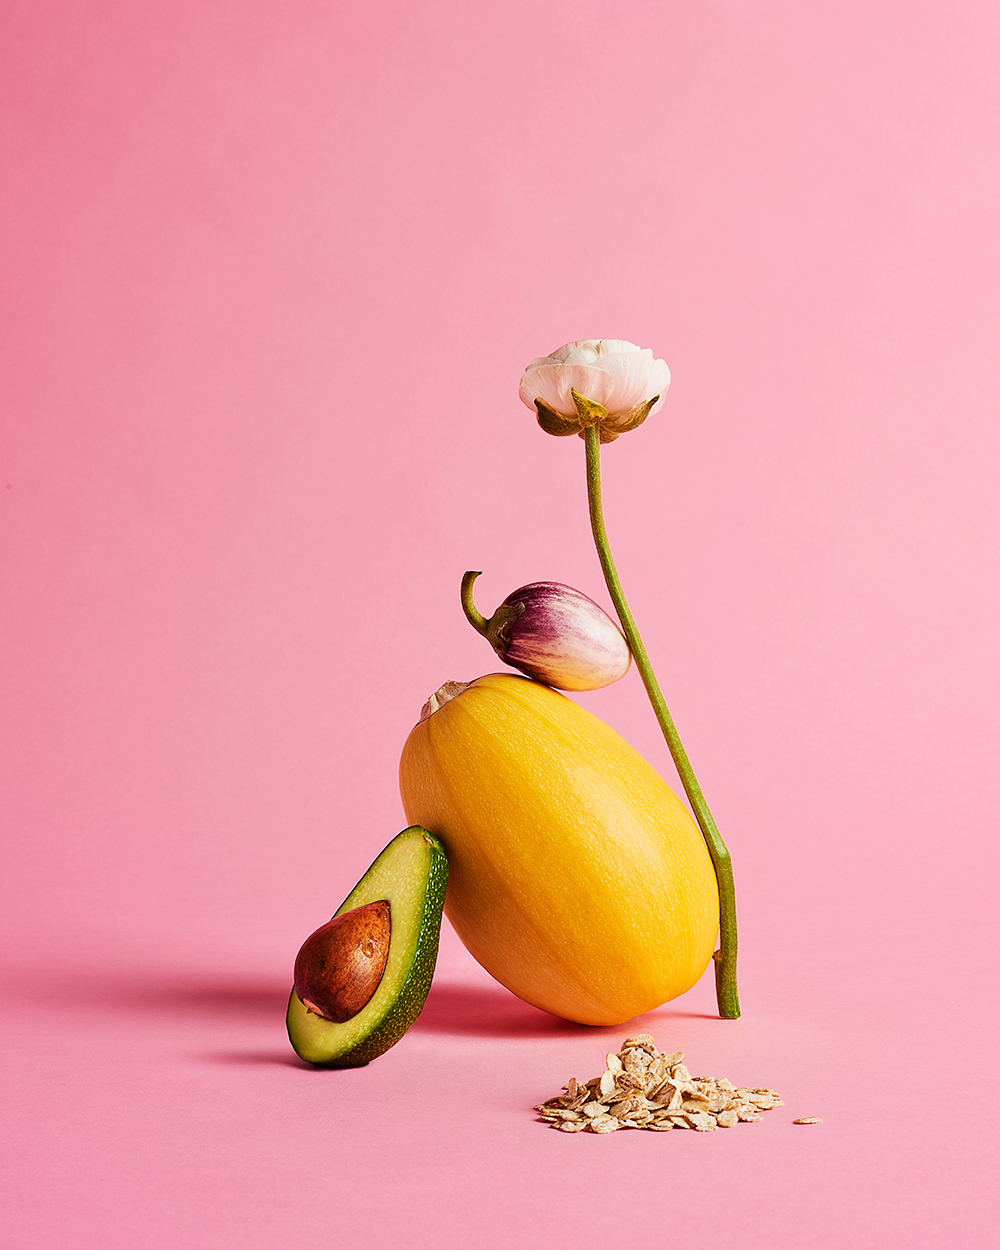 conceptual pink vegetable still life styled by Ray Chaisiwamongkhon